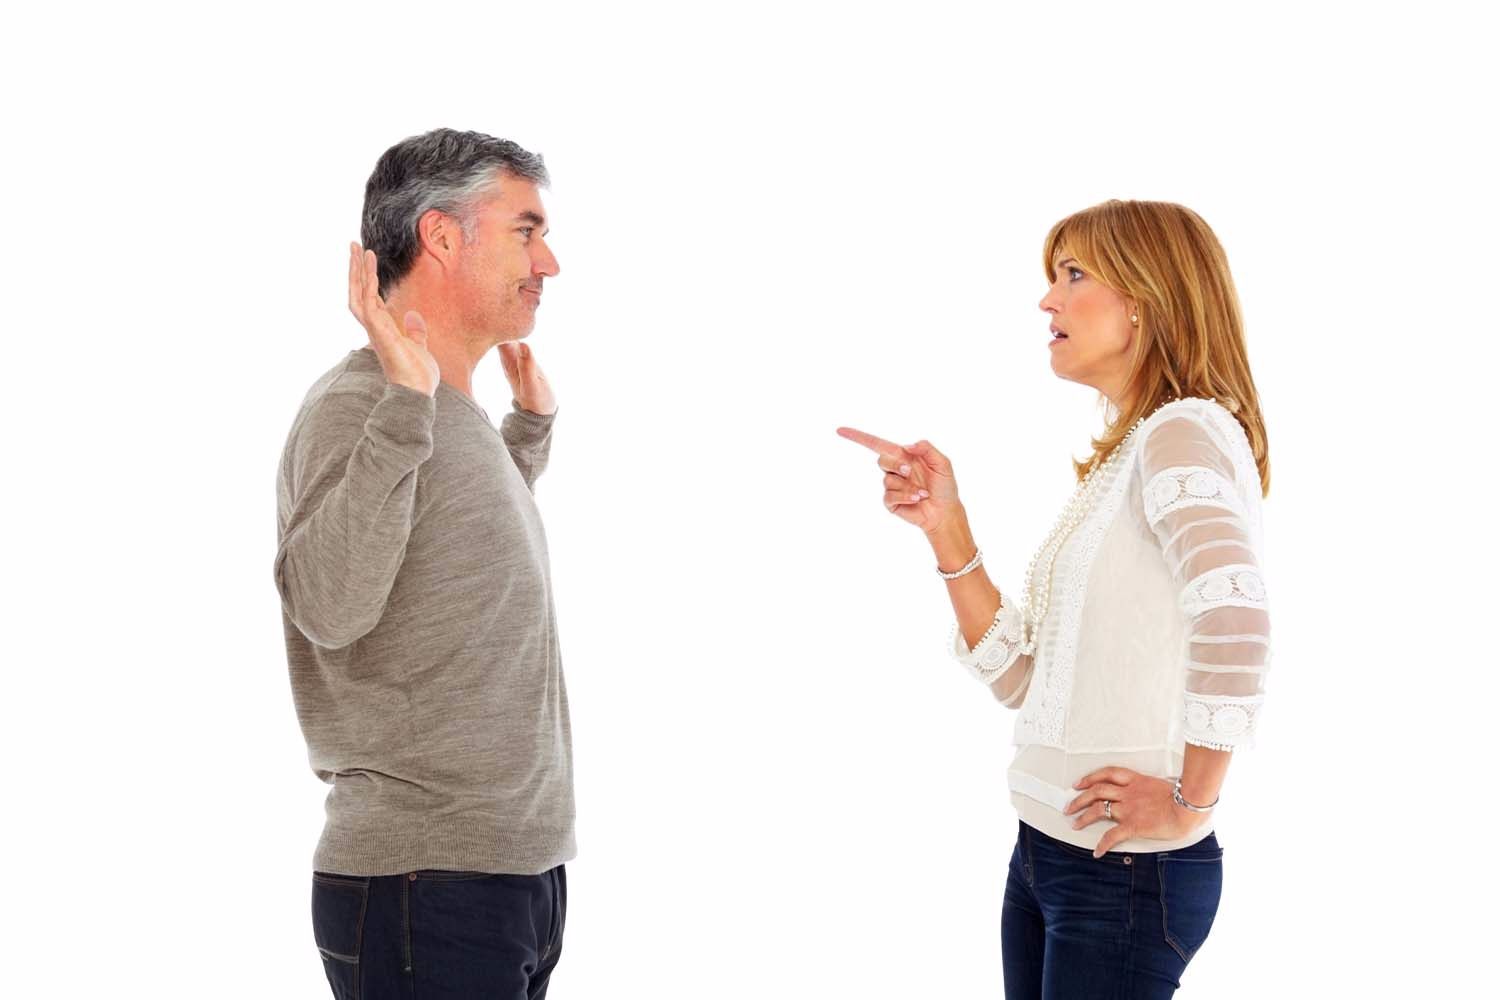 Put an end to your pain. - Start resolving your relationship issues today.